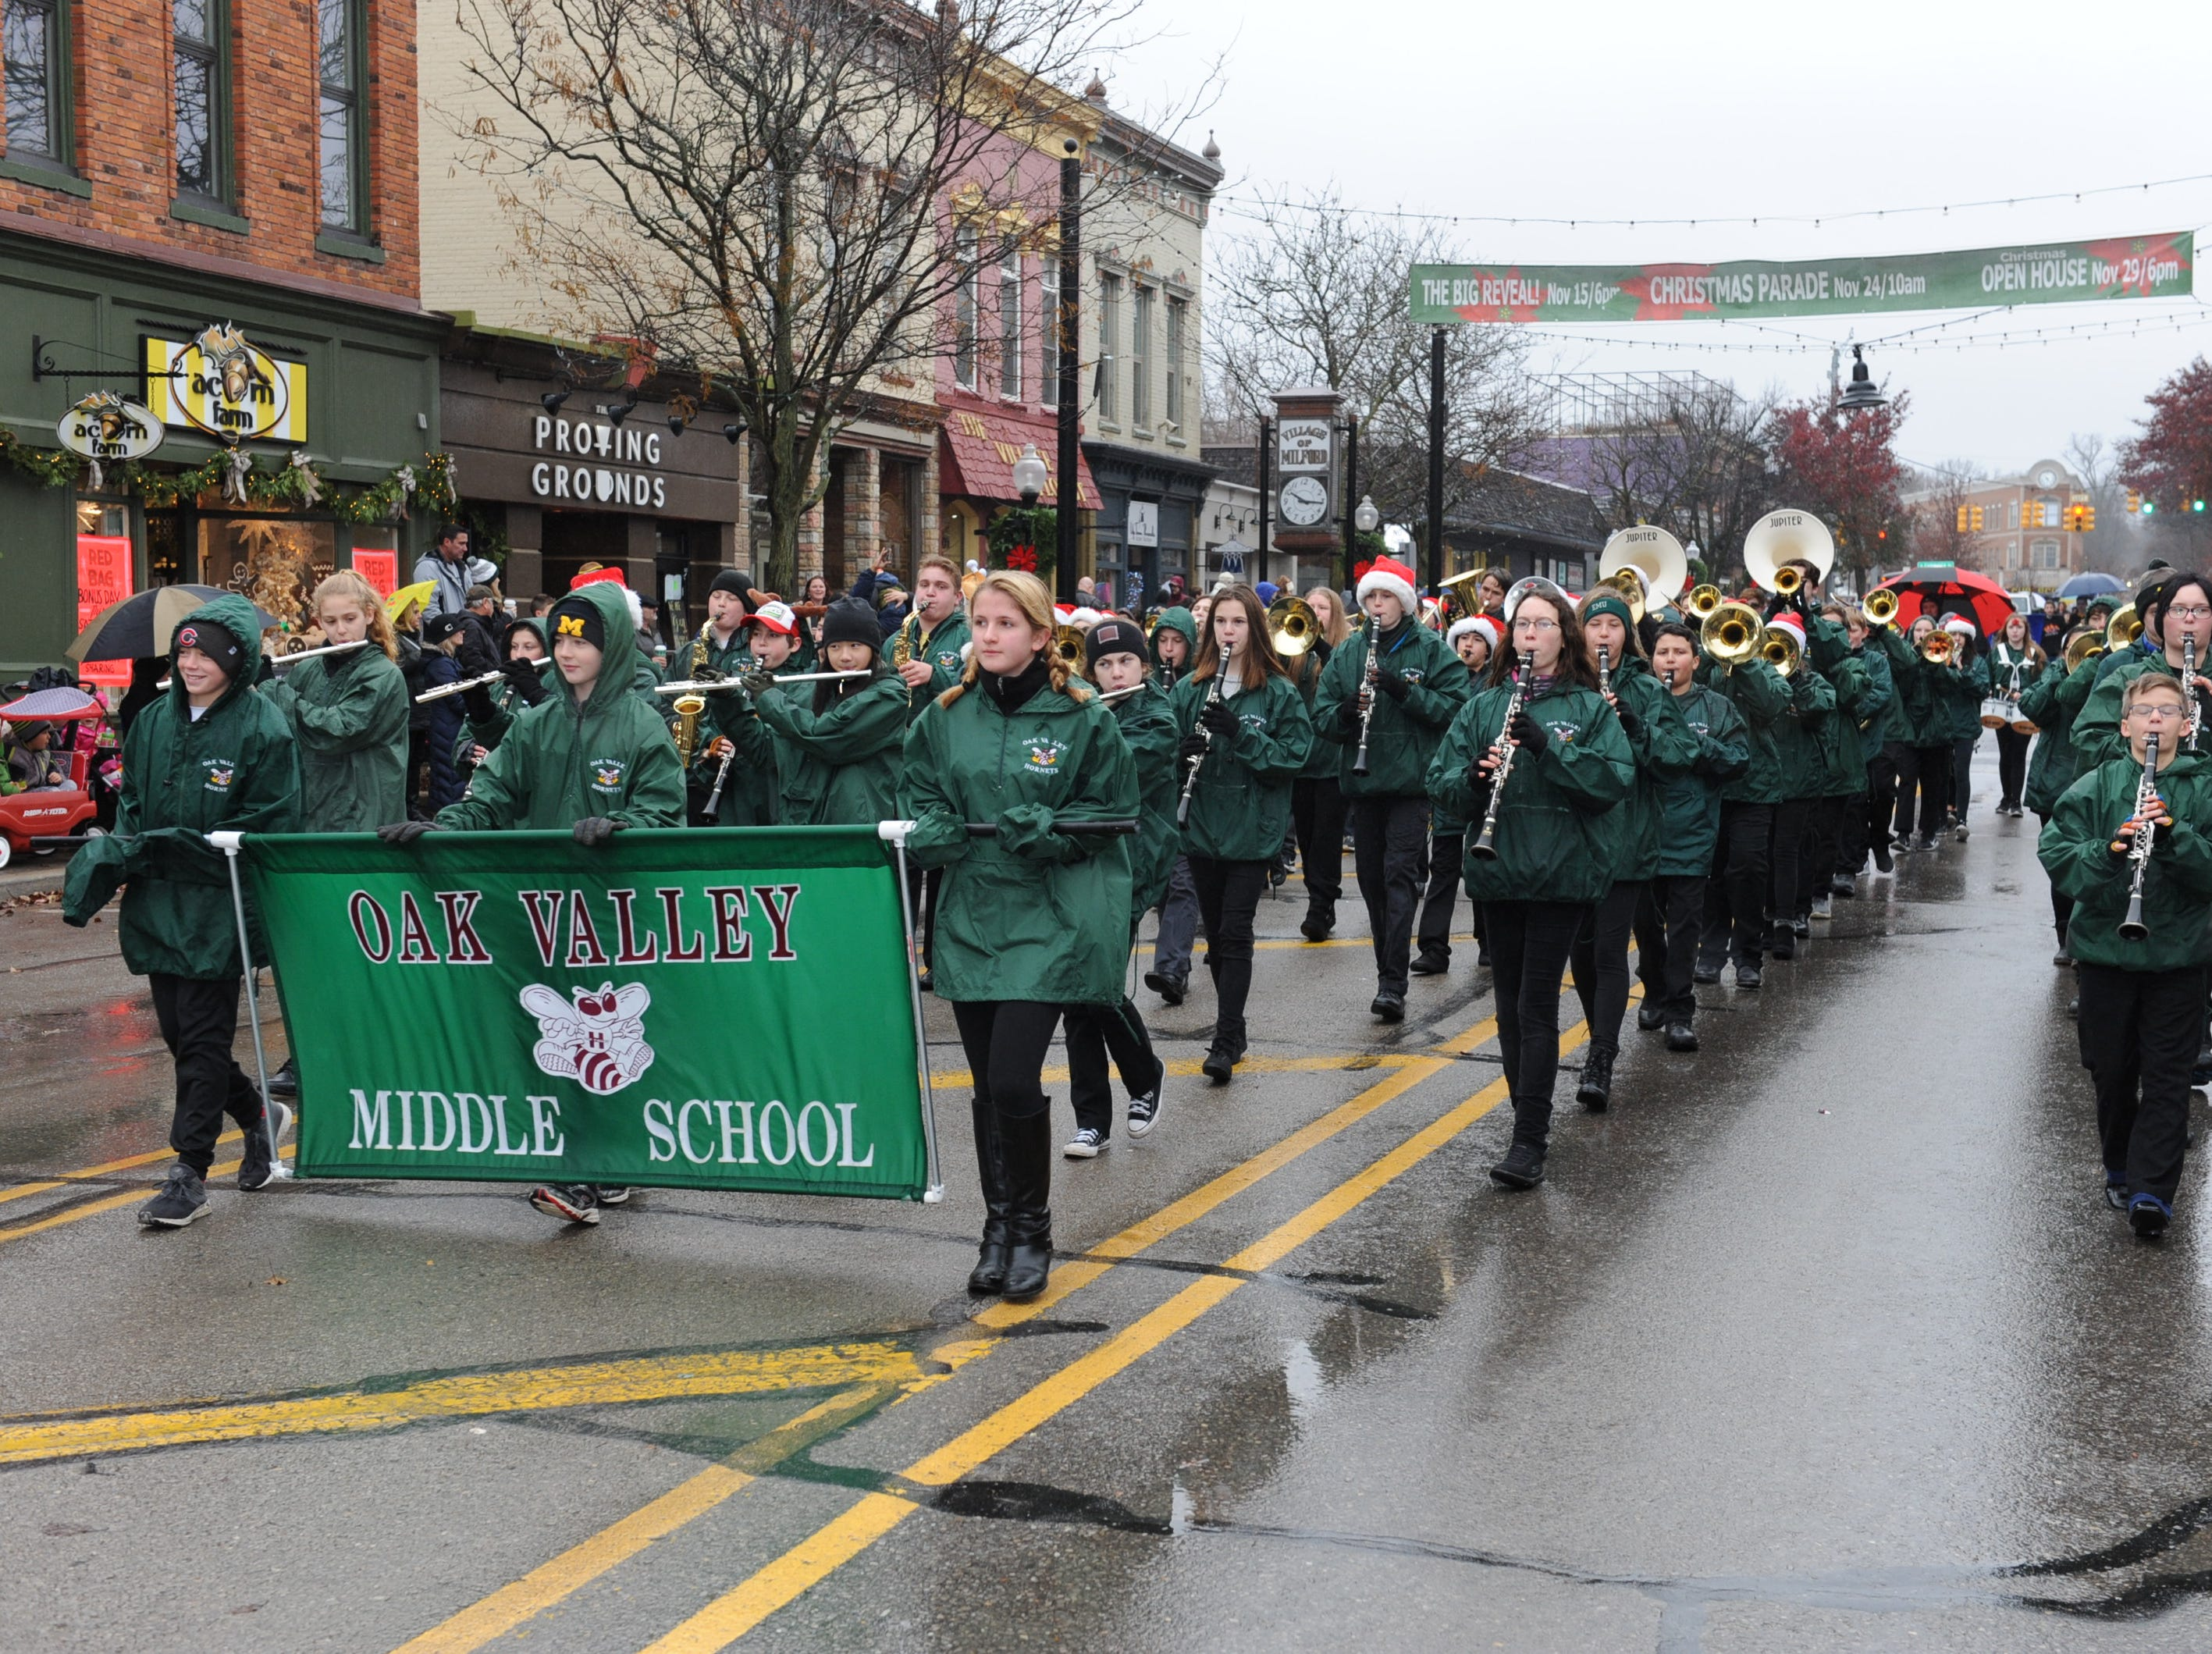 The Oak Valley Middle School band entertains the crowds during Milford's annual Christmas parade.